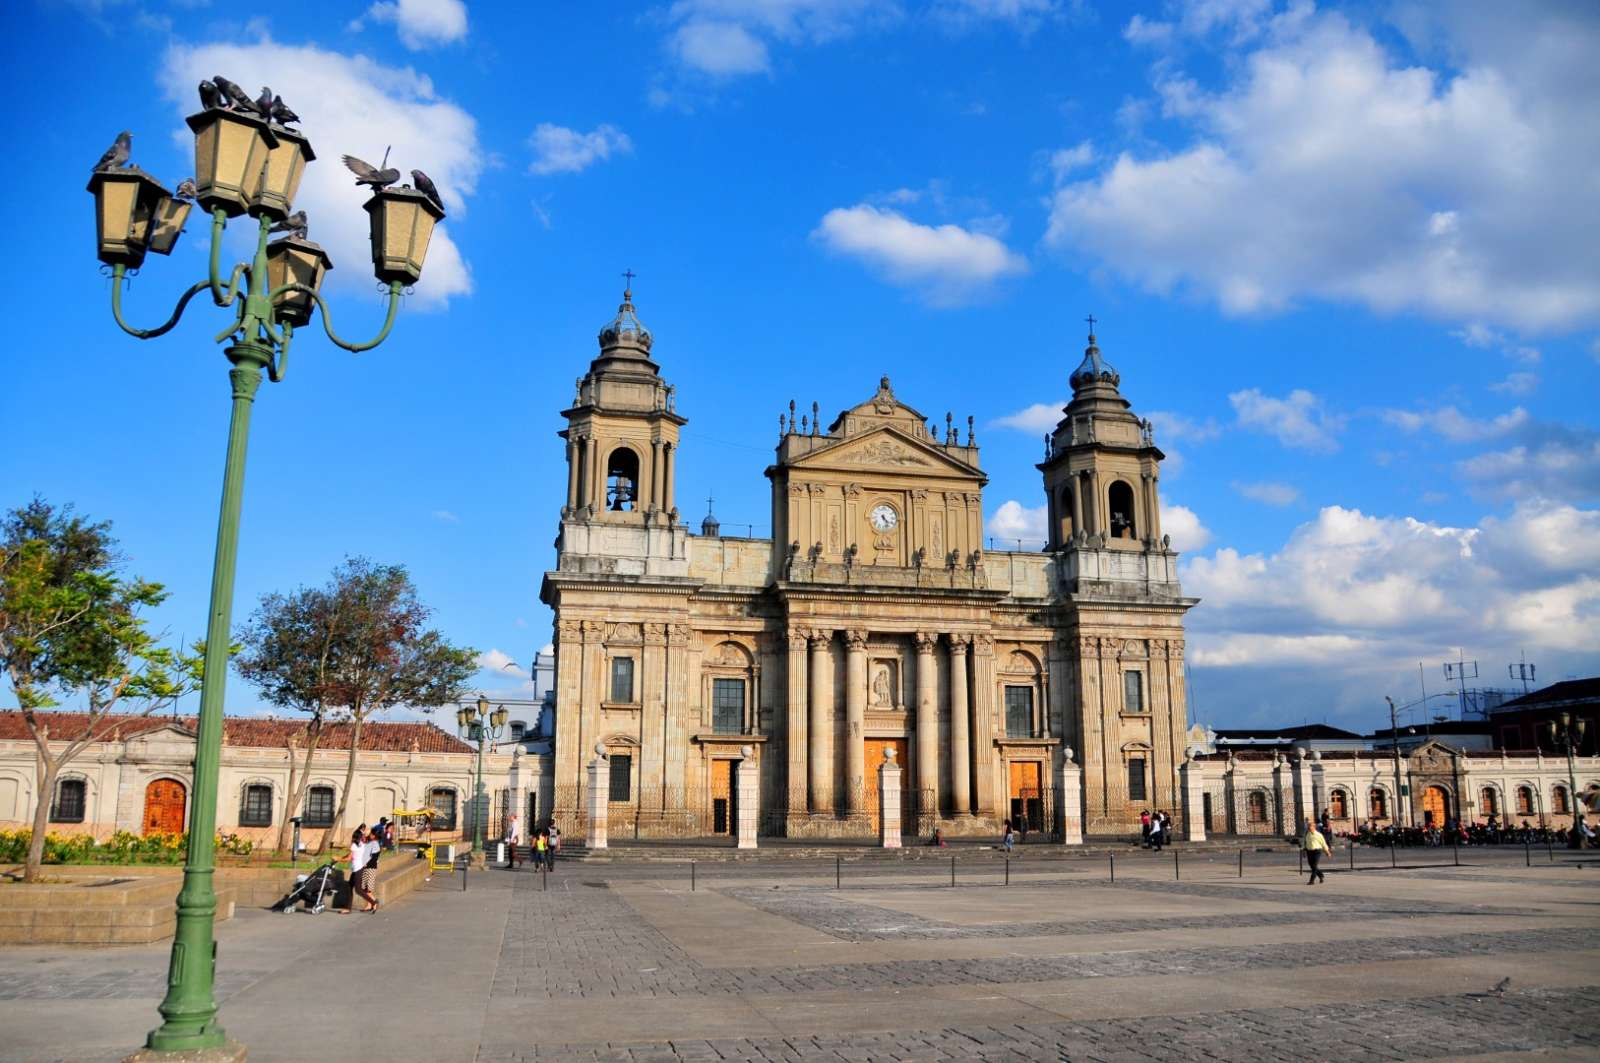 Main square in Guatemala City